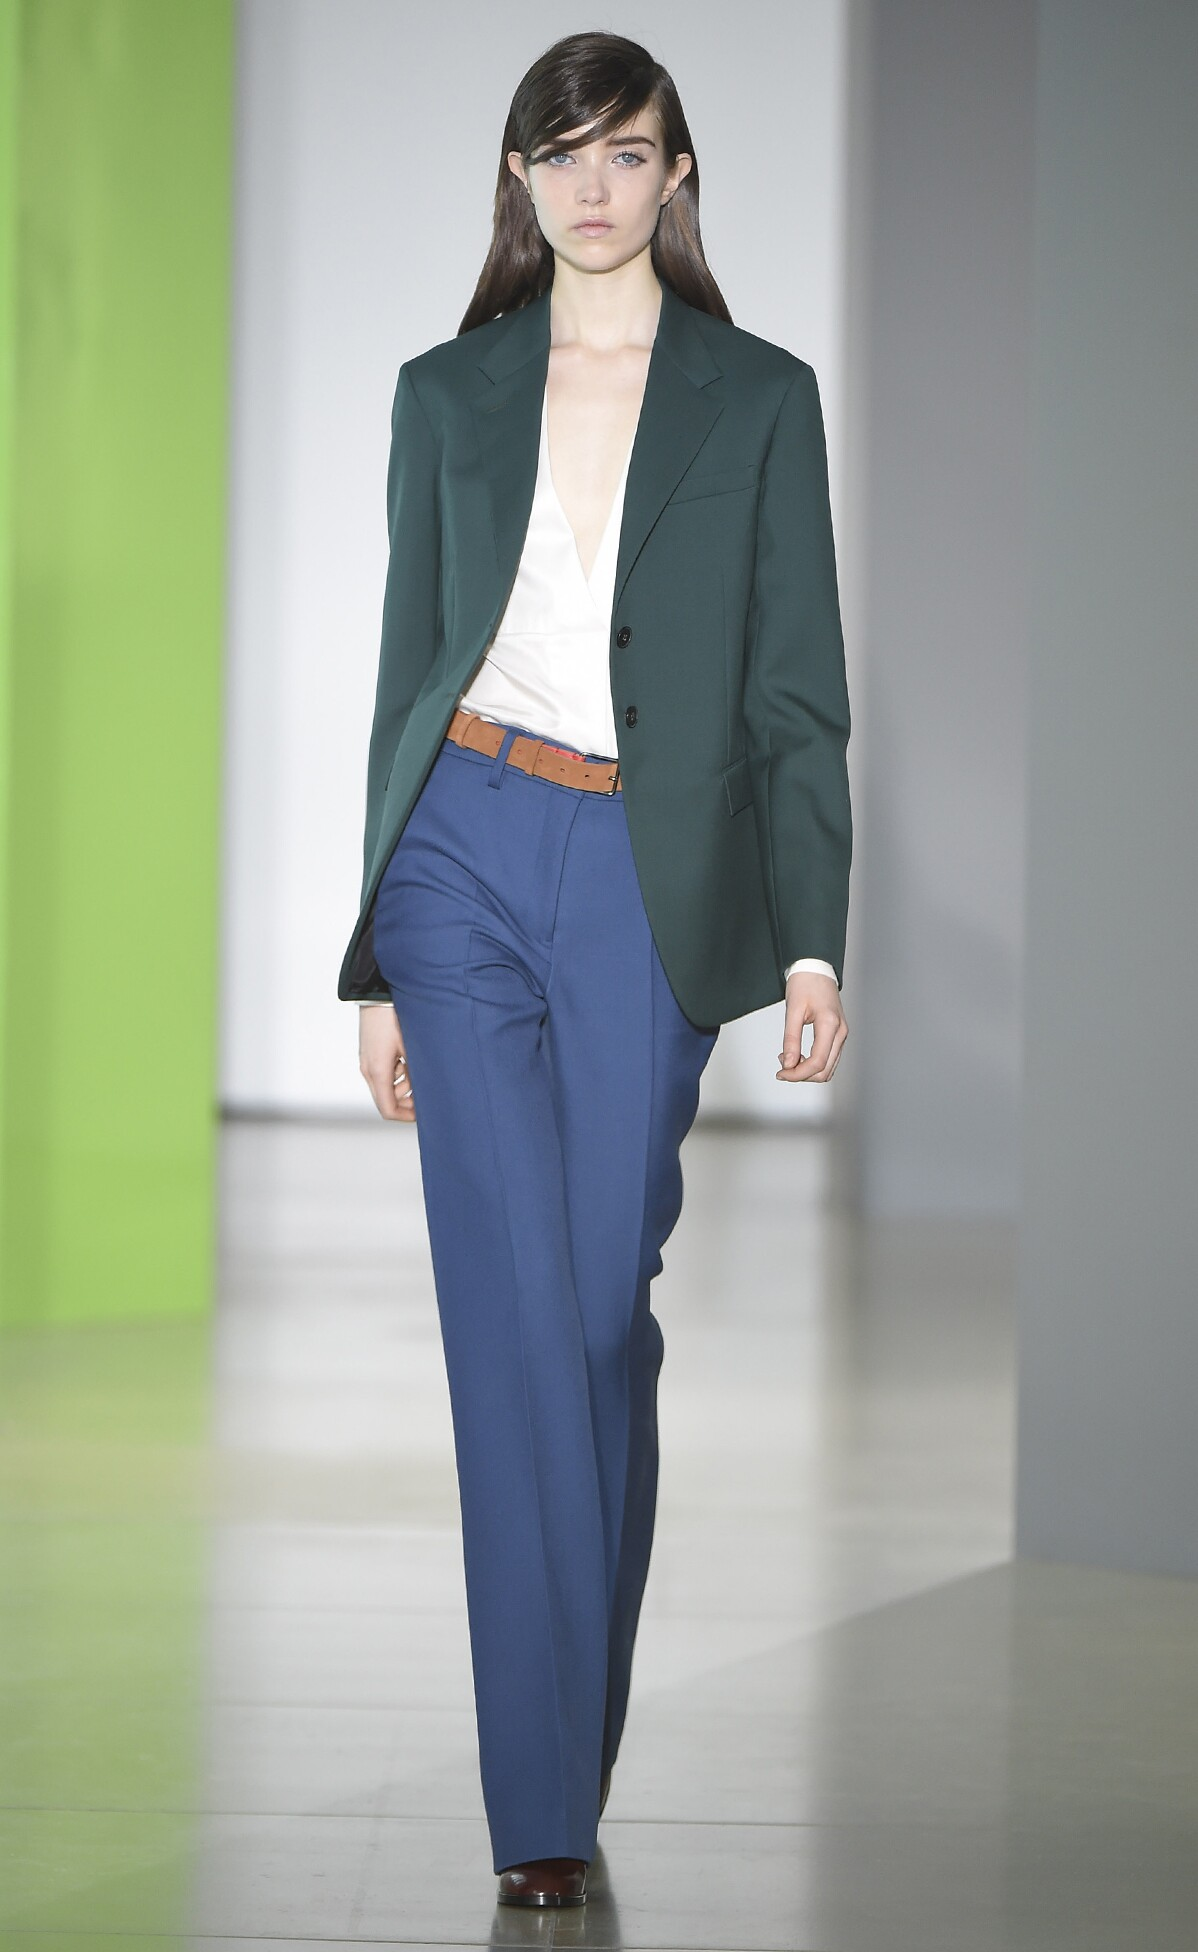 Winter 2015 Fashion Show Jil Sander Collection